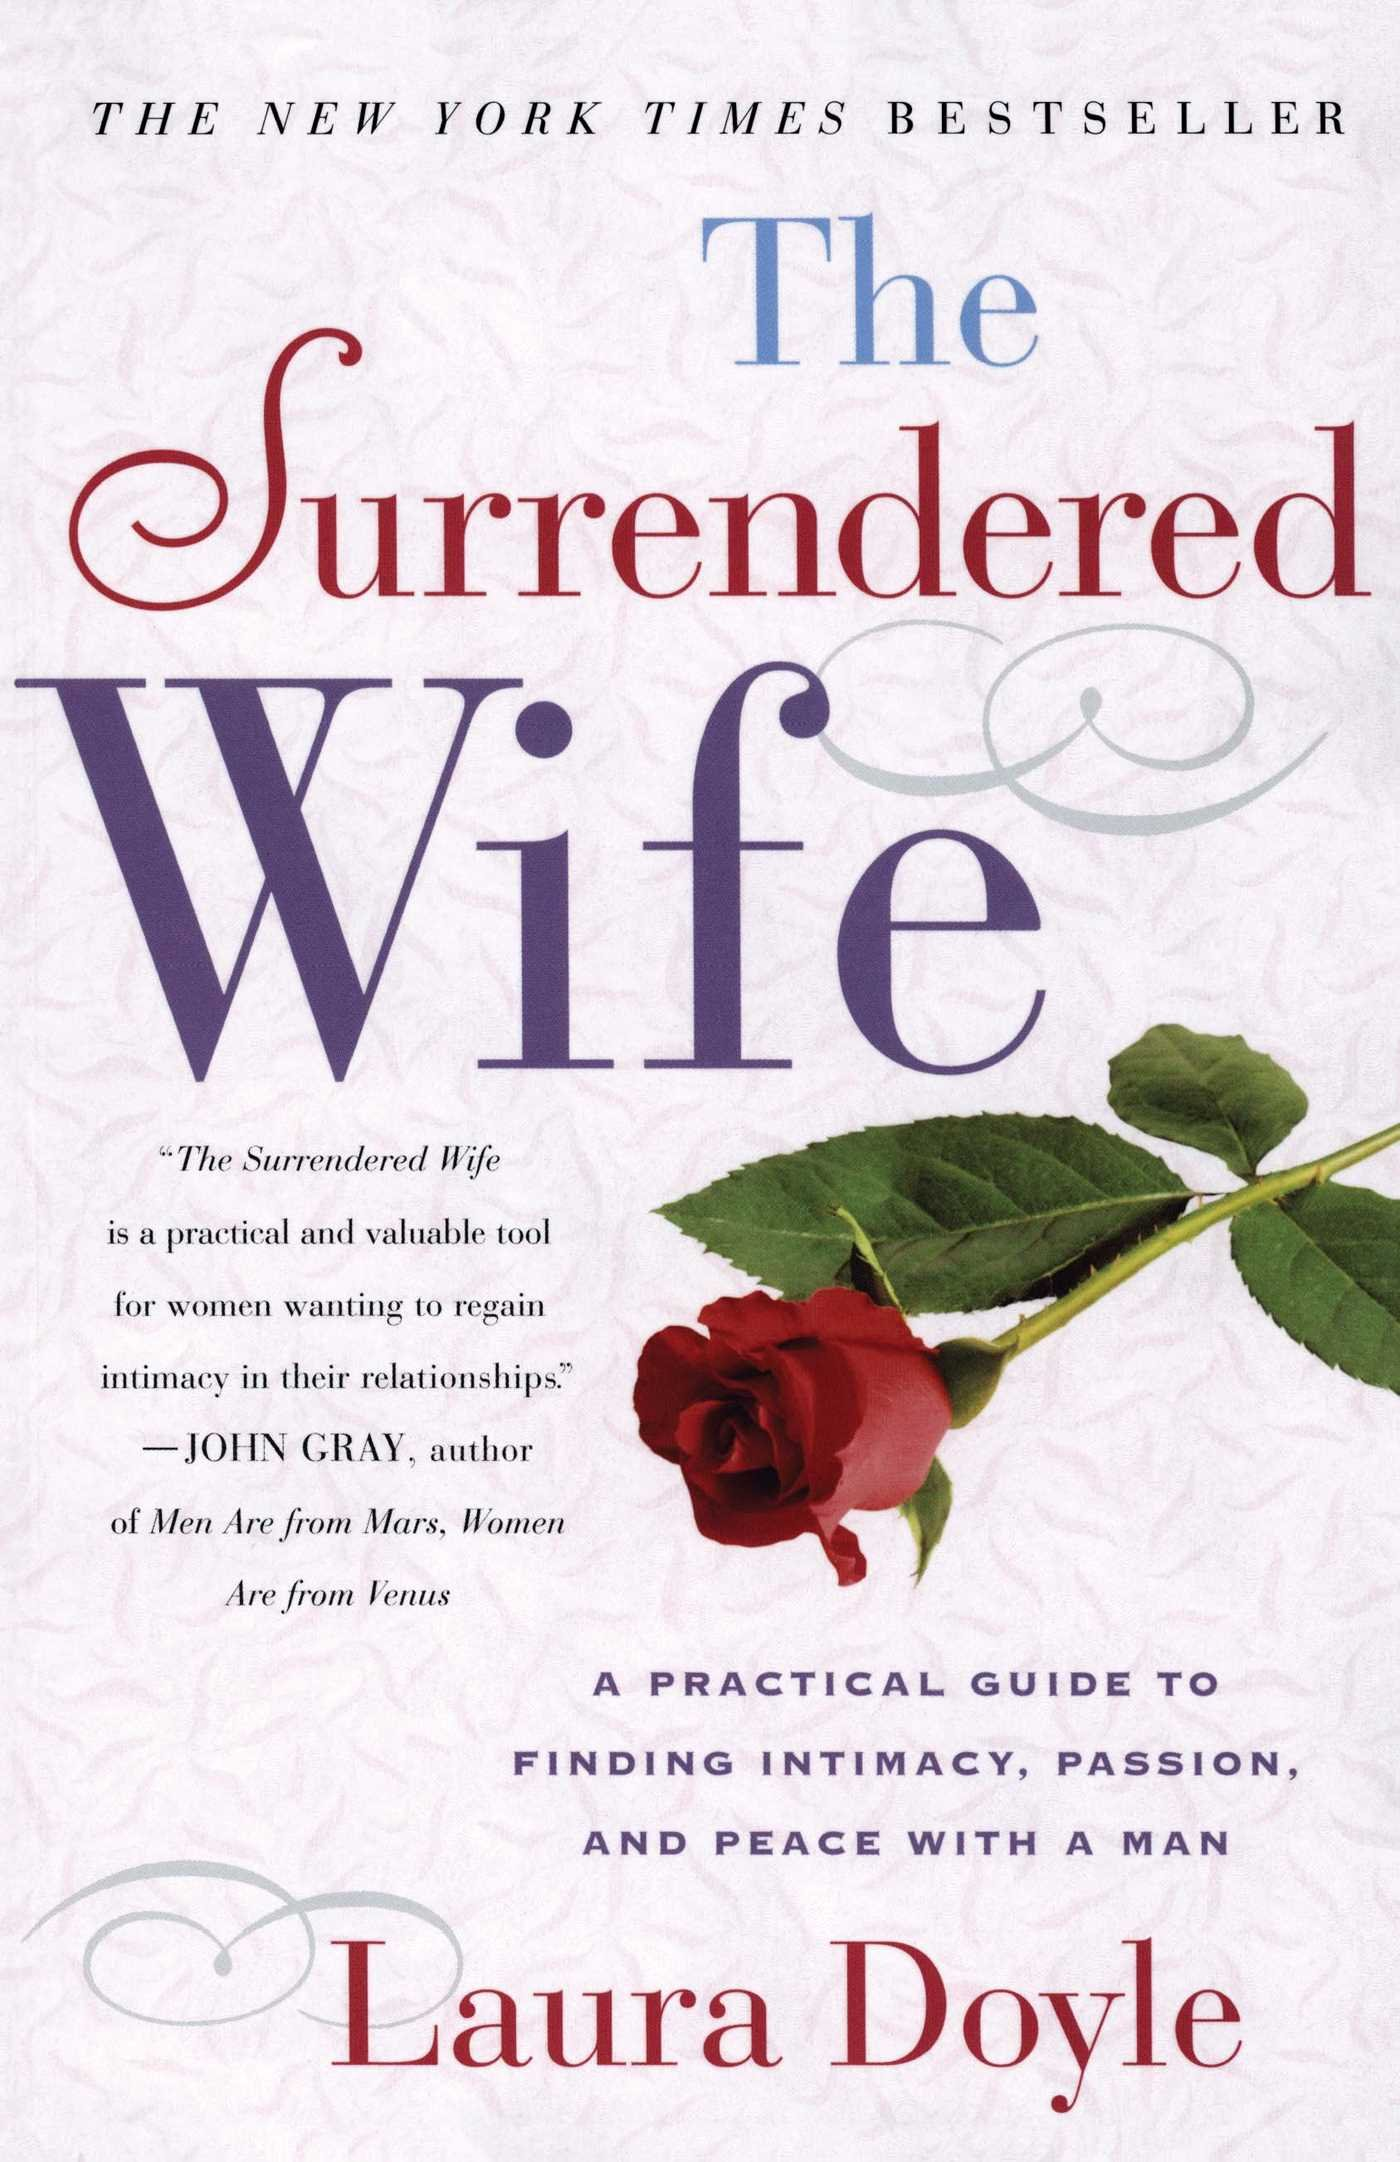 The surrendered wife a practical guide to finding intimacy the surrendered wife a practical guide to finding intimacy passion and peace laura doyle 8601417469576 amazon books fandeluxe Gallery